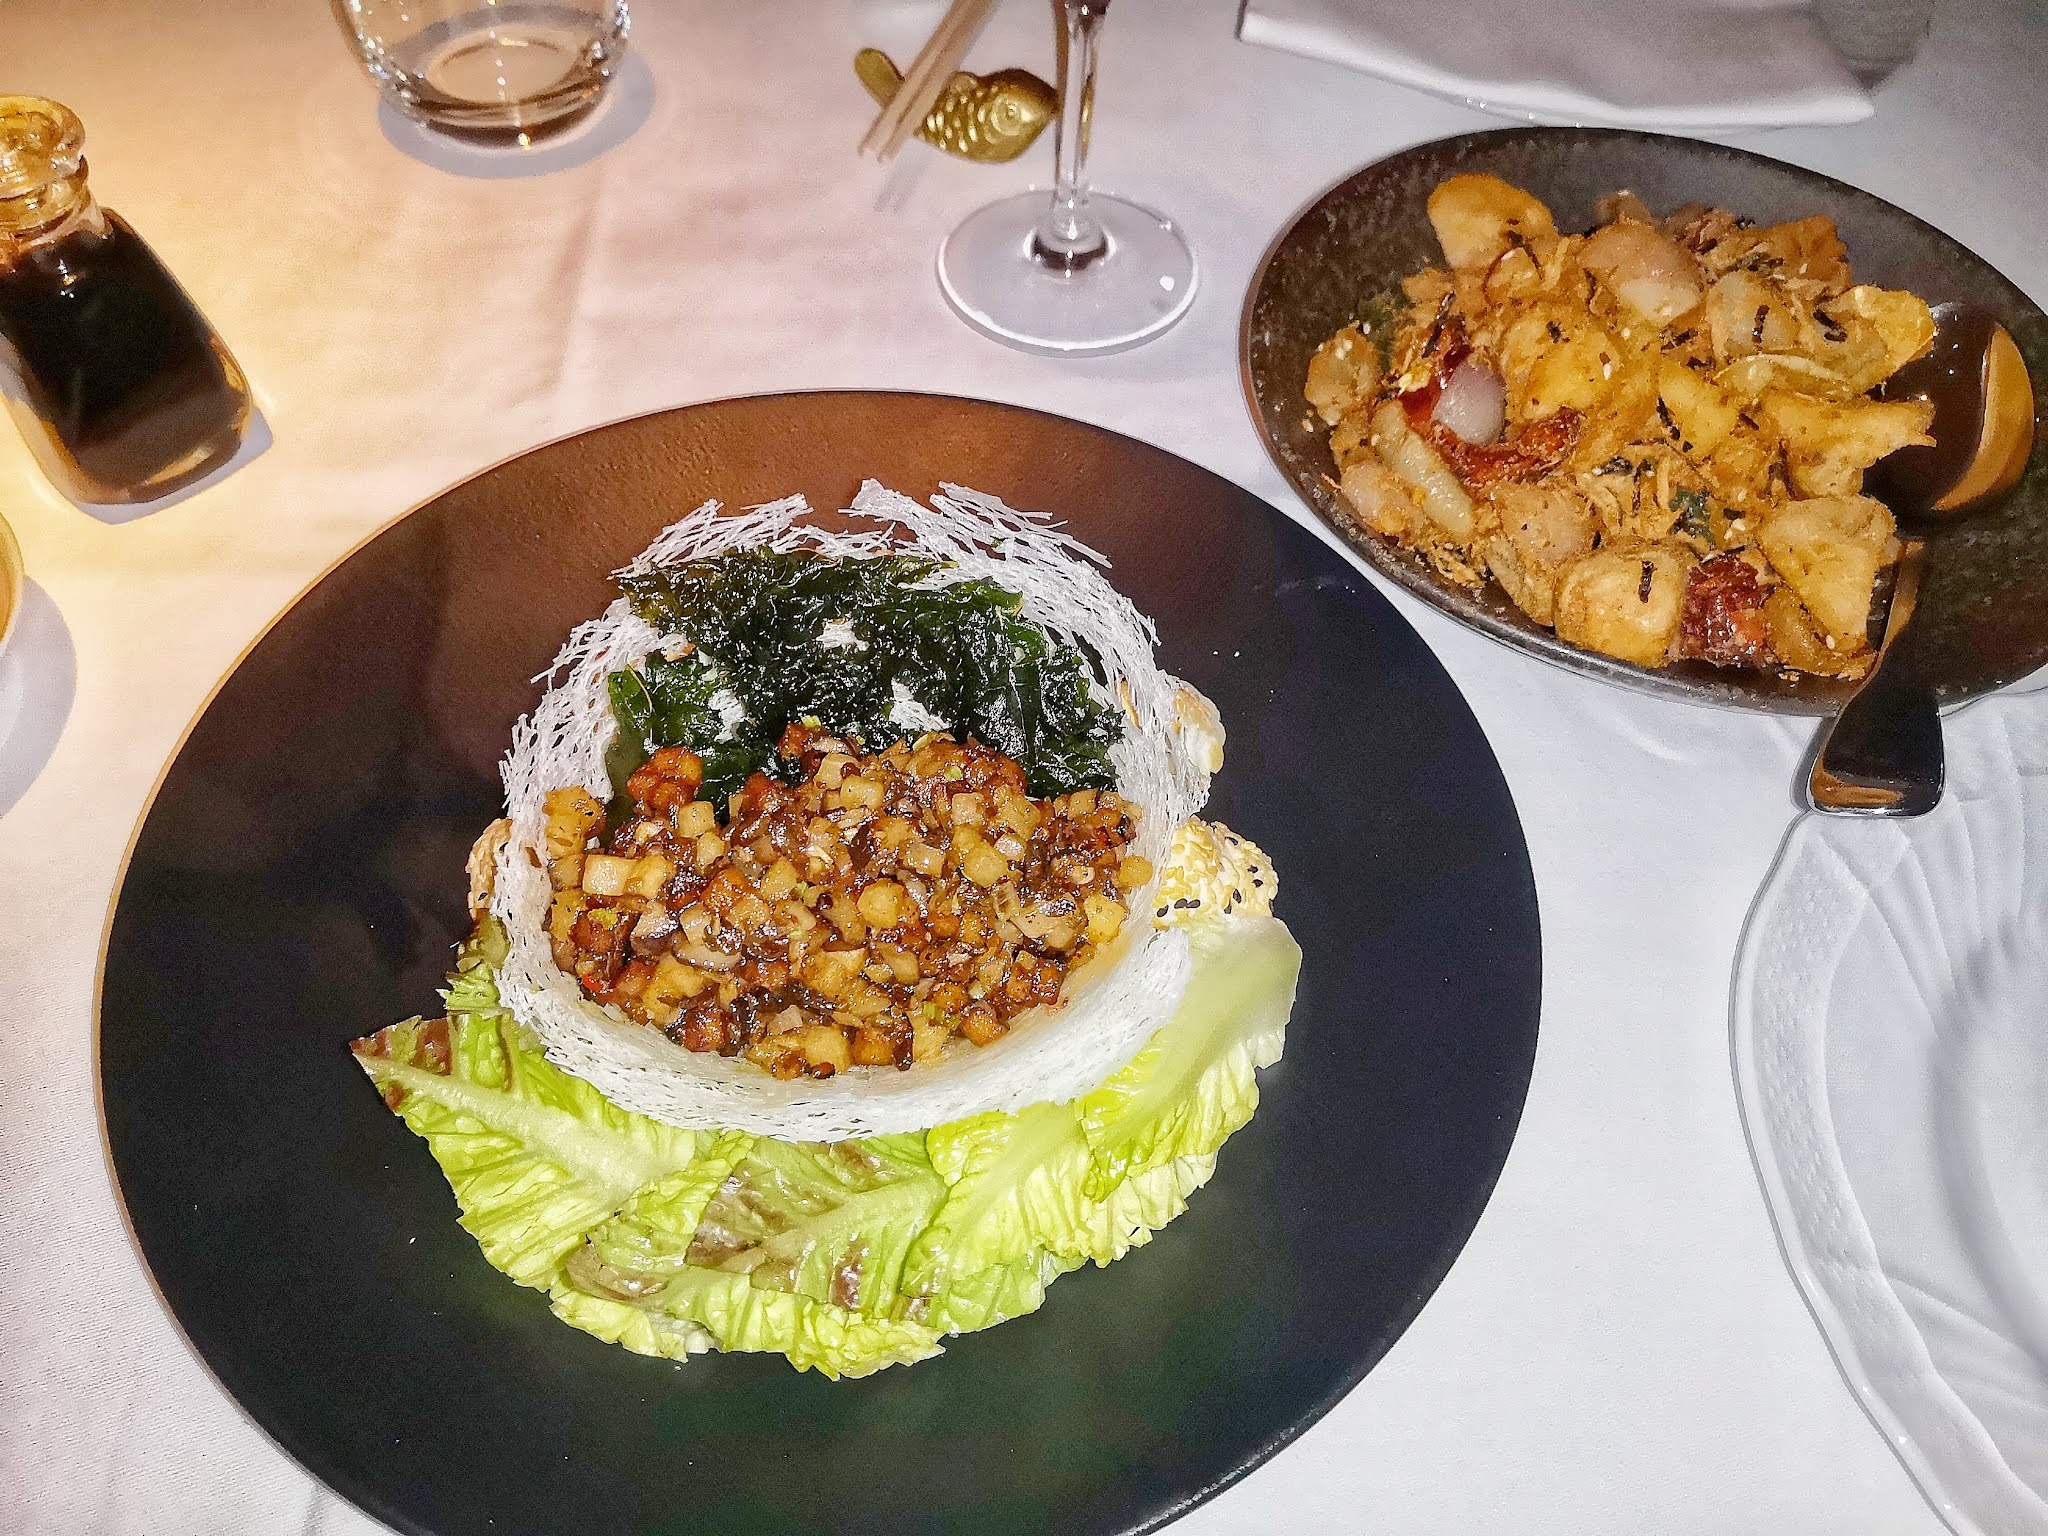 Park chinois food